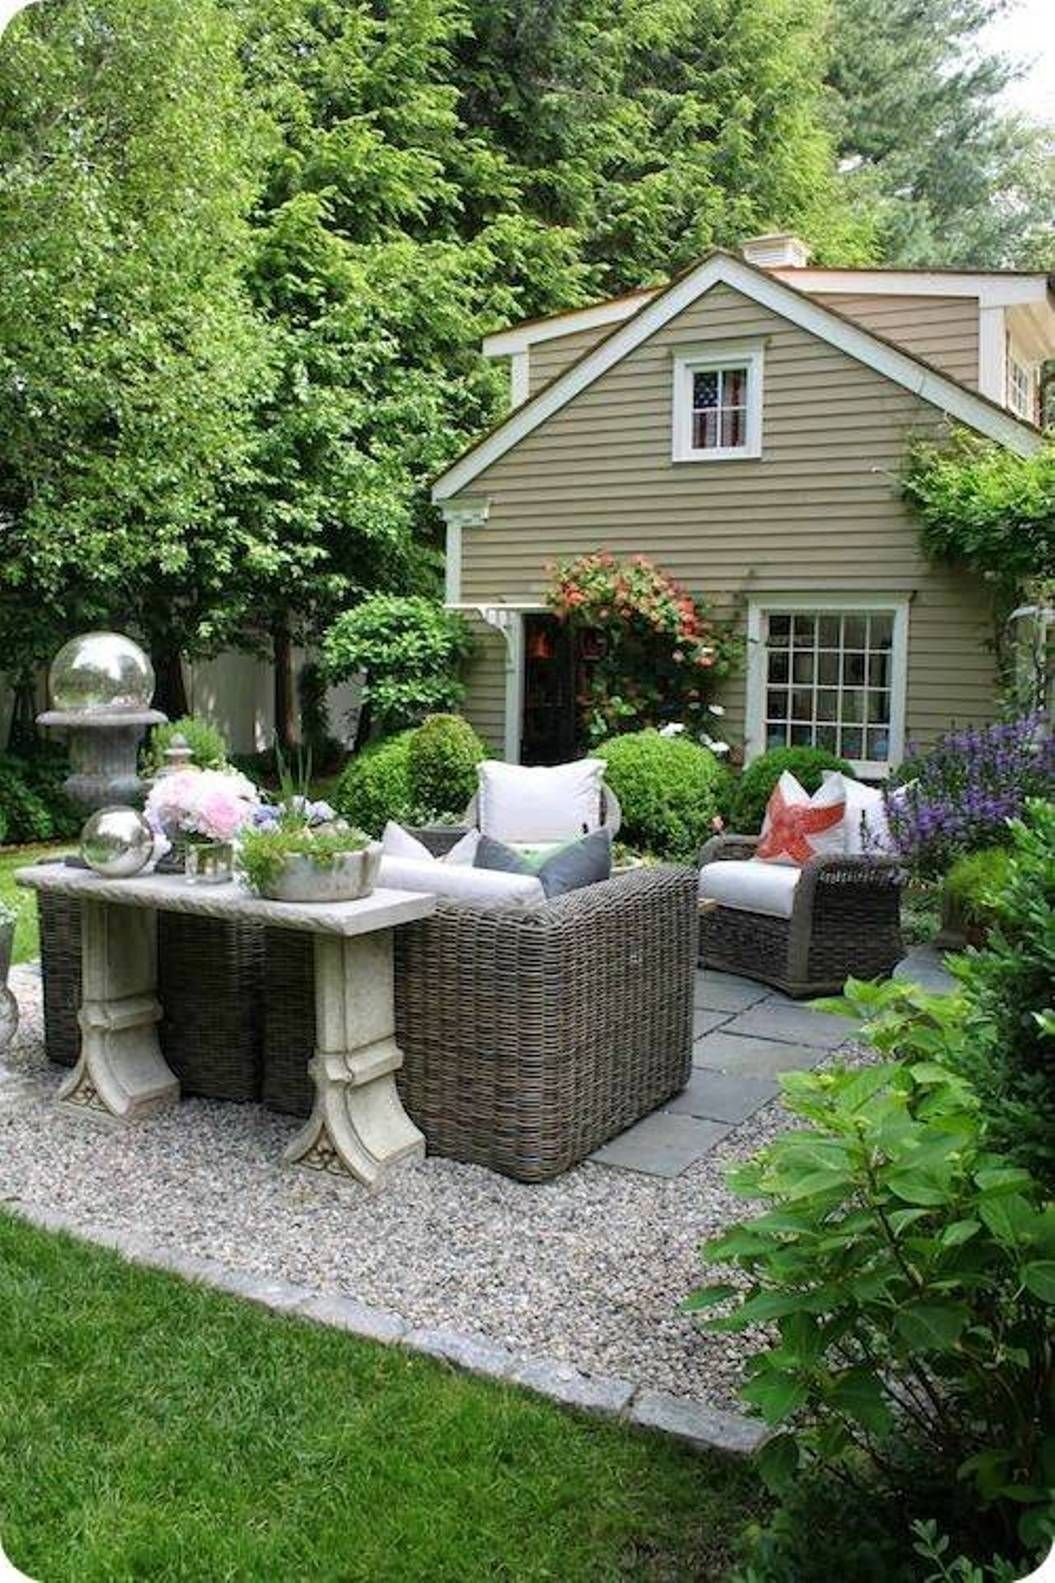 Affordable Building Construction Gravel Inexpensive Landscaping Outdoor Outside Patio Pea Side Of She Backyard Landscaping Easy Patio Backyard Patio